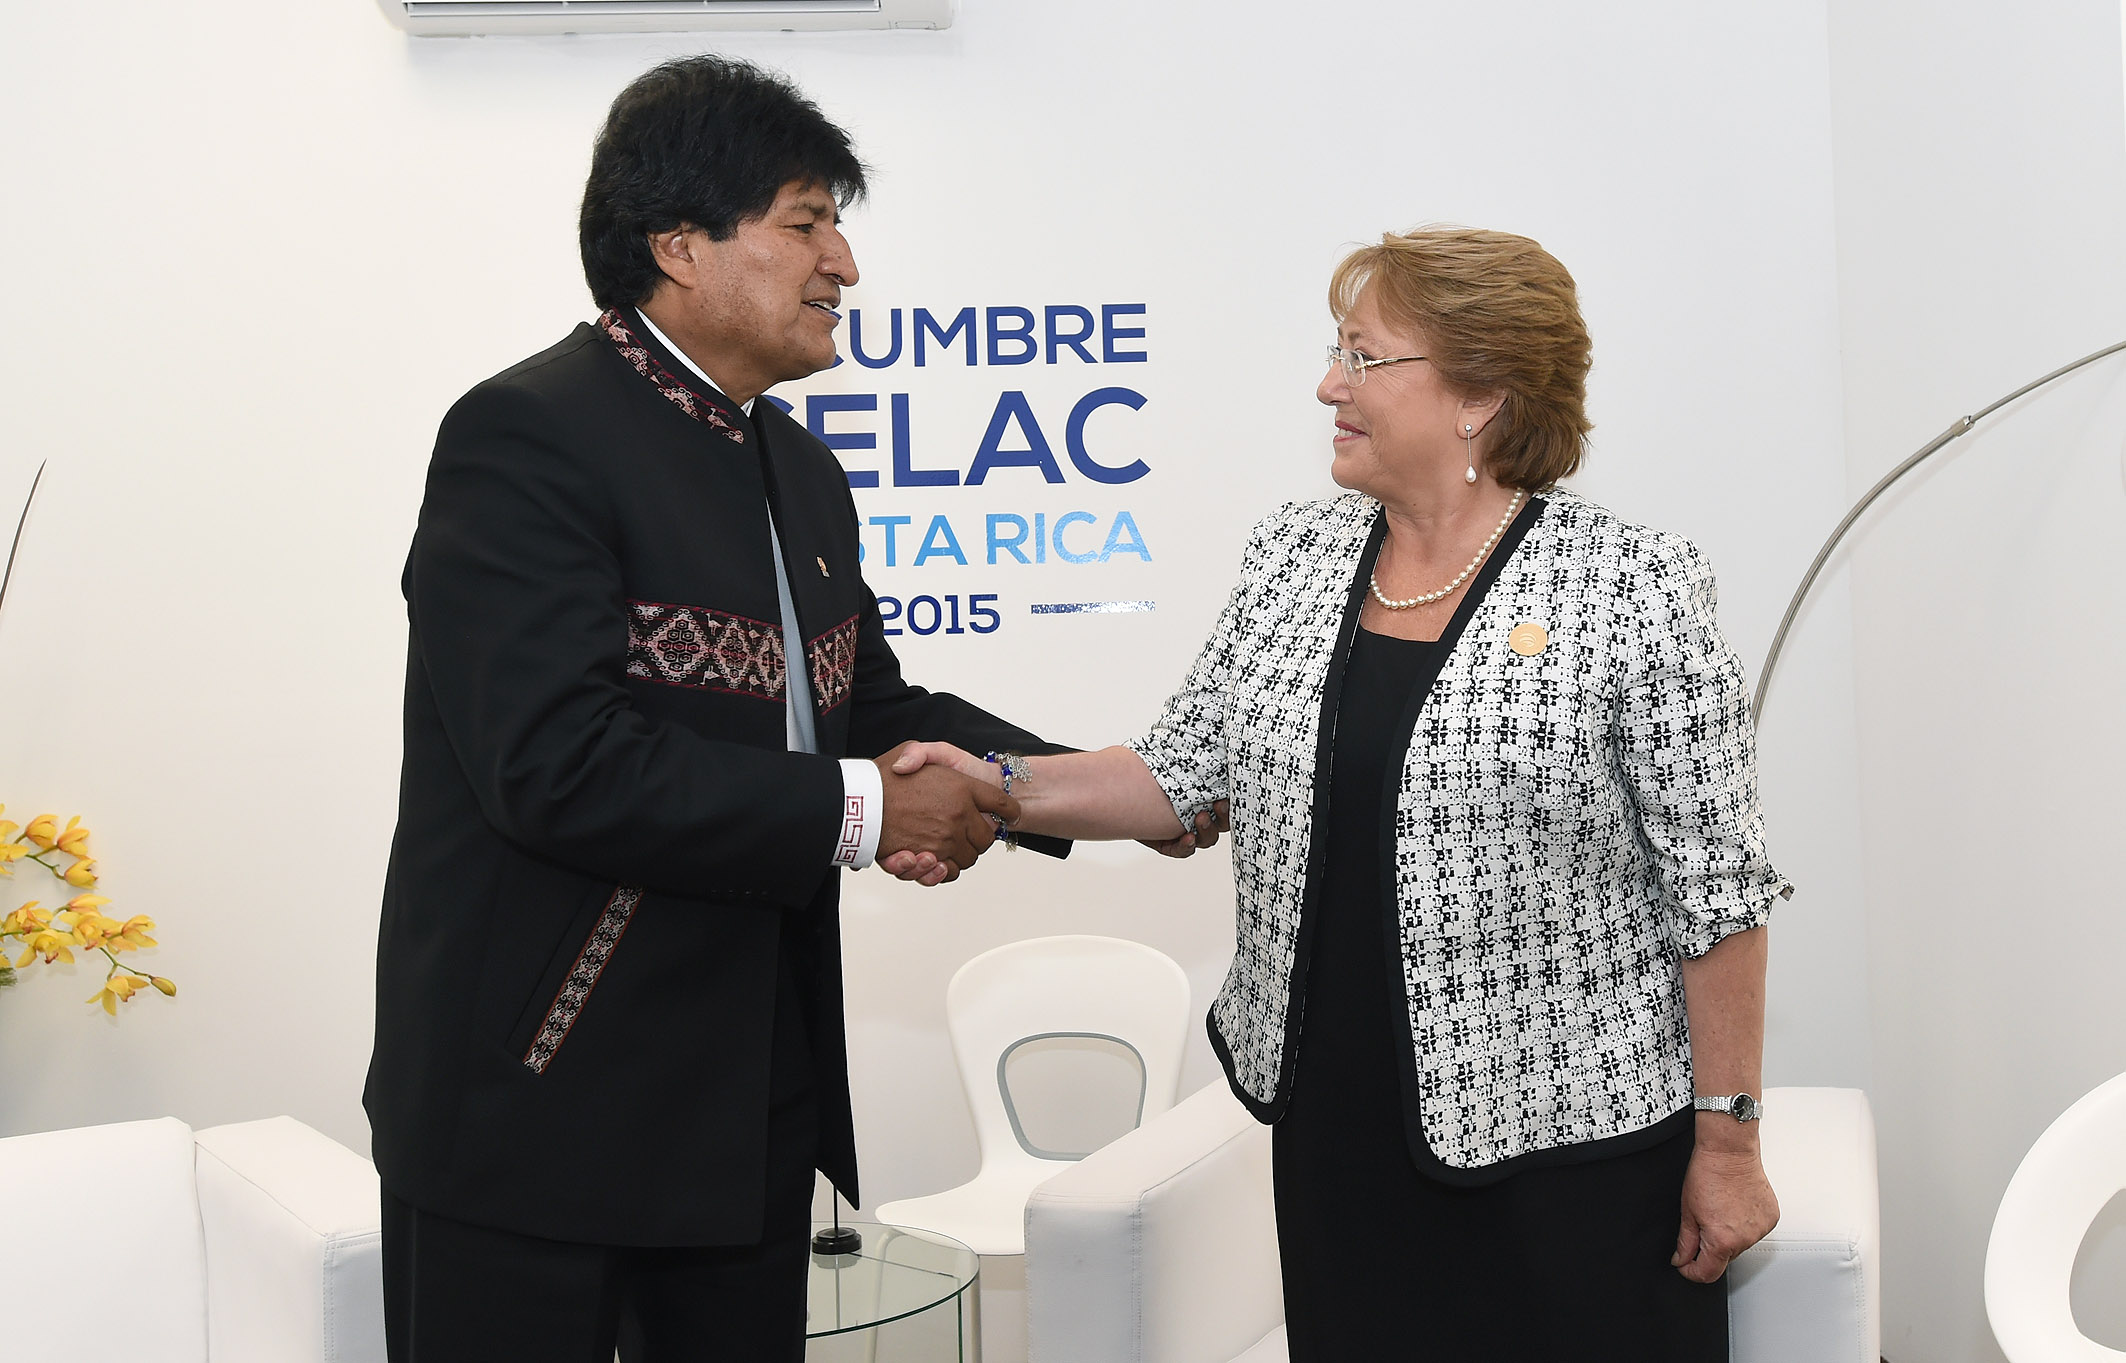 Evo Morales y Michelle Bachelet.Wikimedia commons